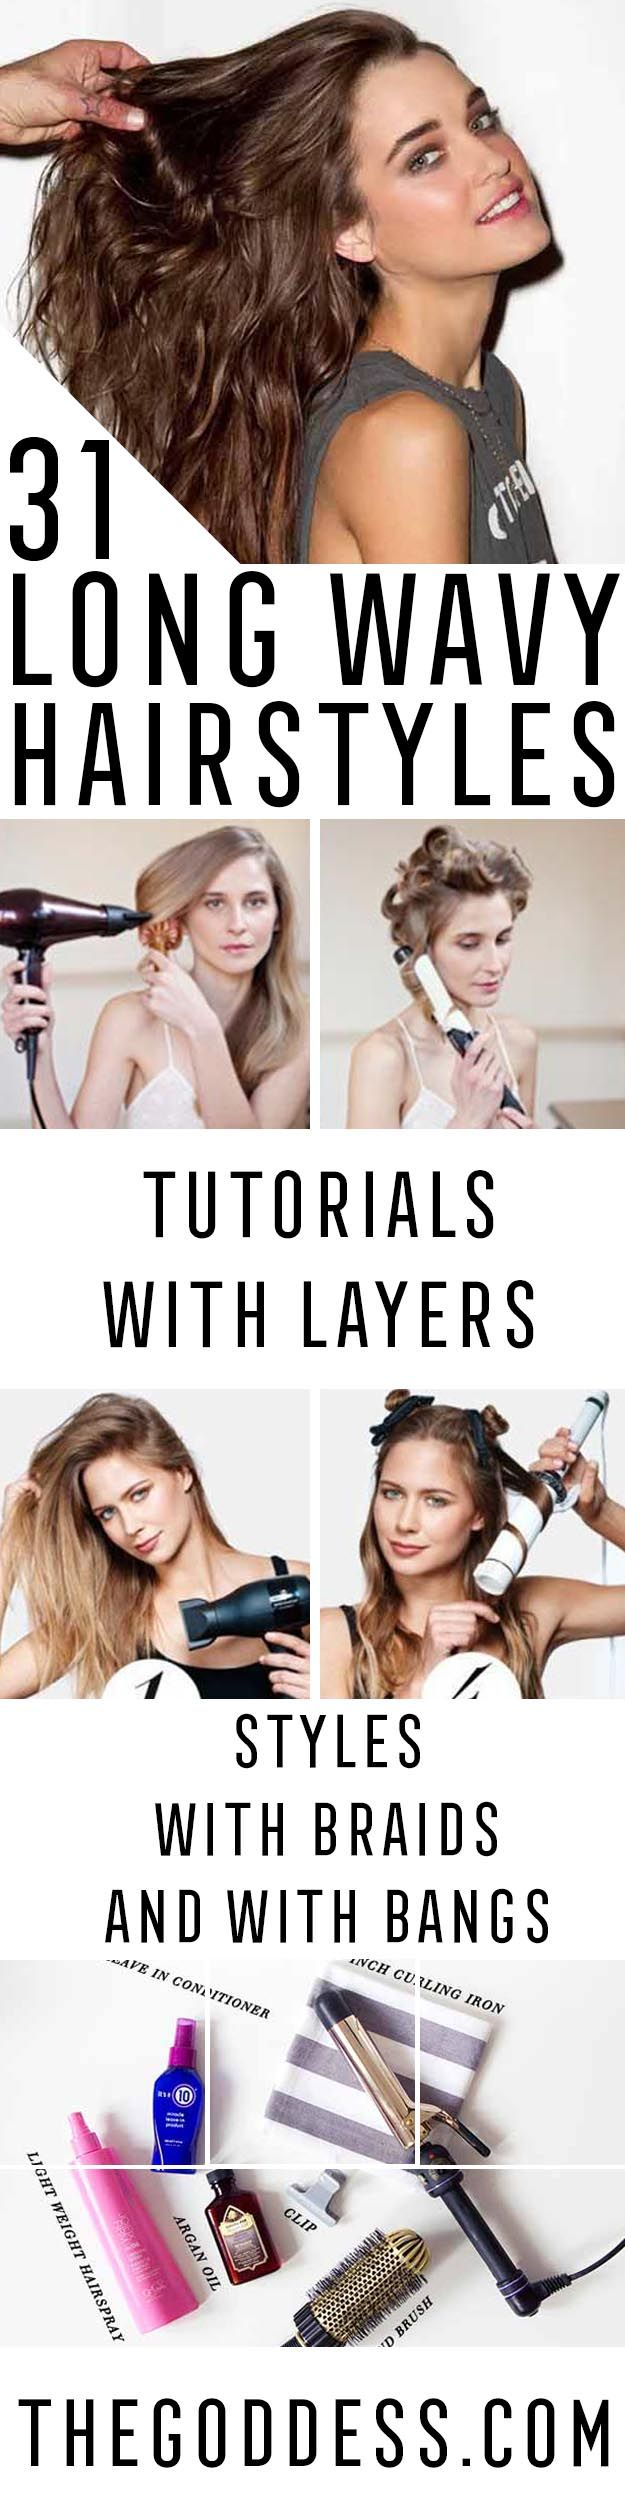 Long Wavy Hairstyles - Beautiful Long Layered Haircuts And Long Wavy Haircuts With Layers And With Bangs. Half Up Bob Tutorial For Wedding, Prom, Or For Homecoming. No Heat Wavy Hairstyles That Are Gorgeous And Natural. Black, Blonde, And Brunette Long Wavy Hairstyles For Round Face, With Braid, With Ponytail, and With Medium Length Hair. DIY Ideas For That Boho Look, Or Updos For Medium Length Hair. Add More Volume For Thin Hair With Waves And Curls…